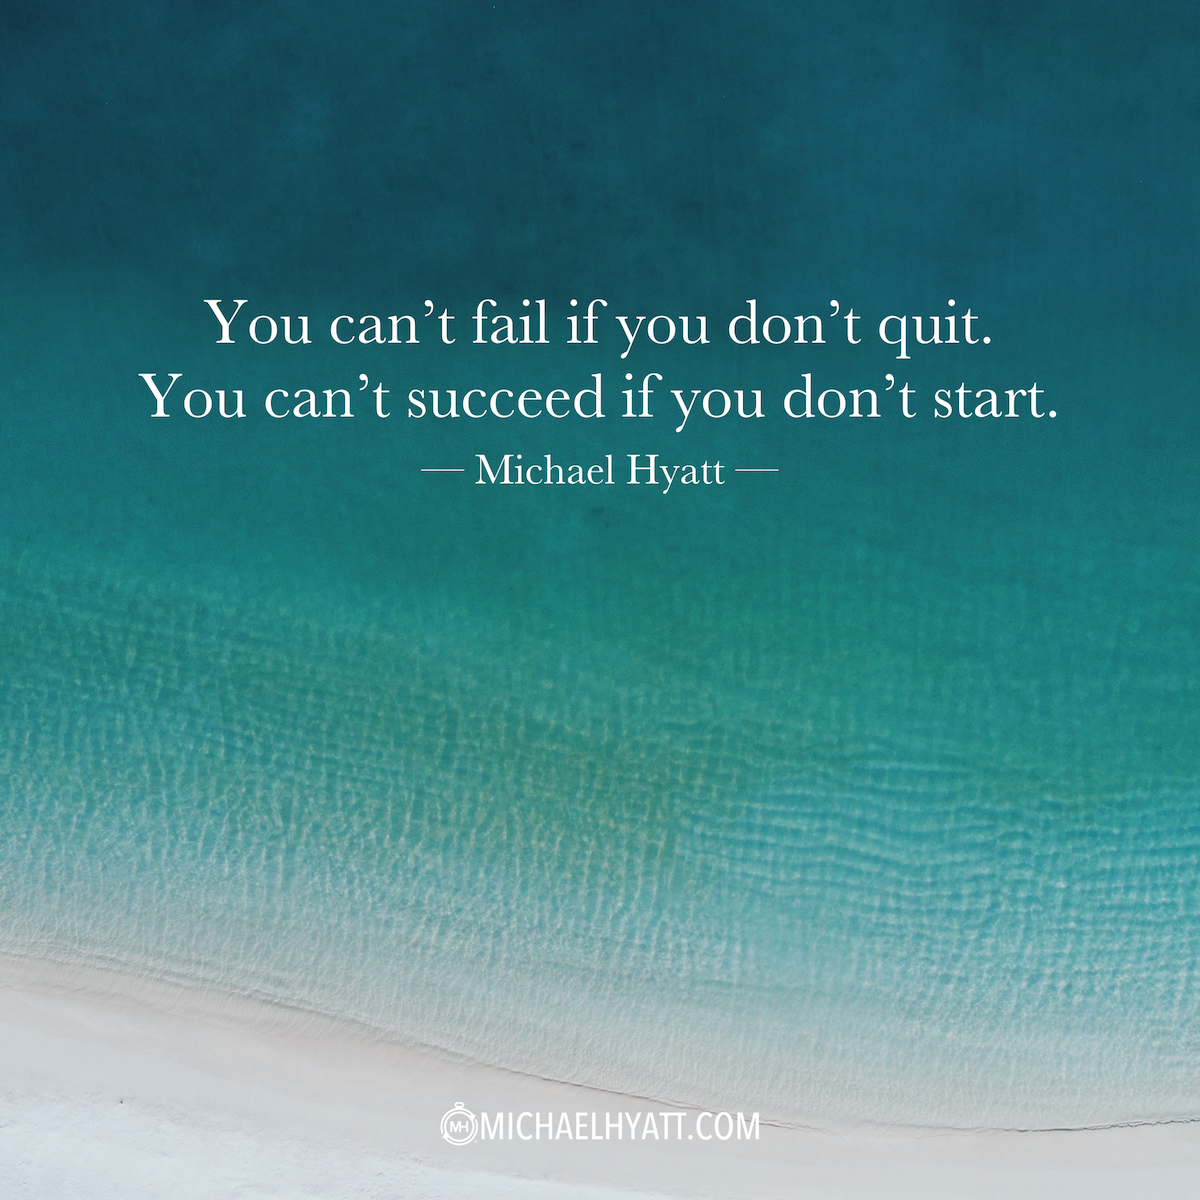 Shareable Images Michael Hyatt Quitting Quotes Wise Words Quotes Michael Hyatt